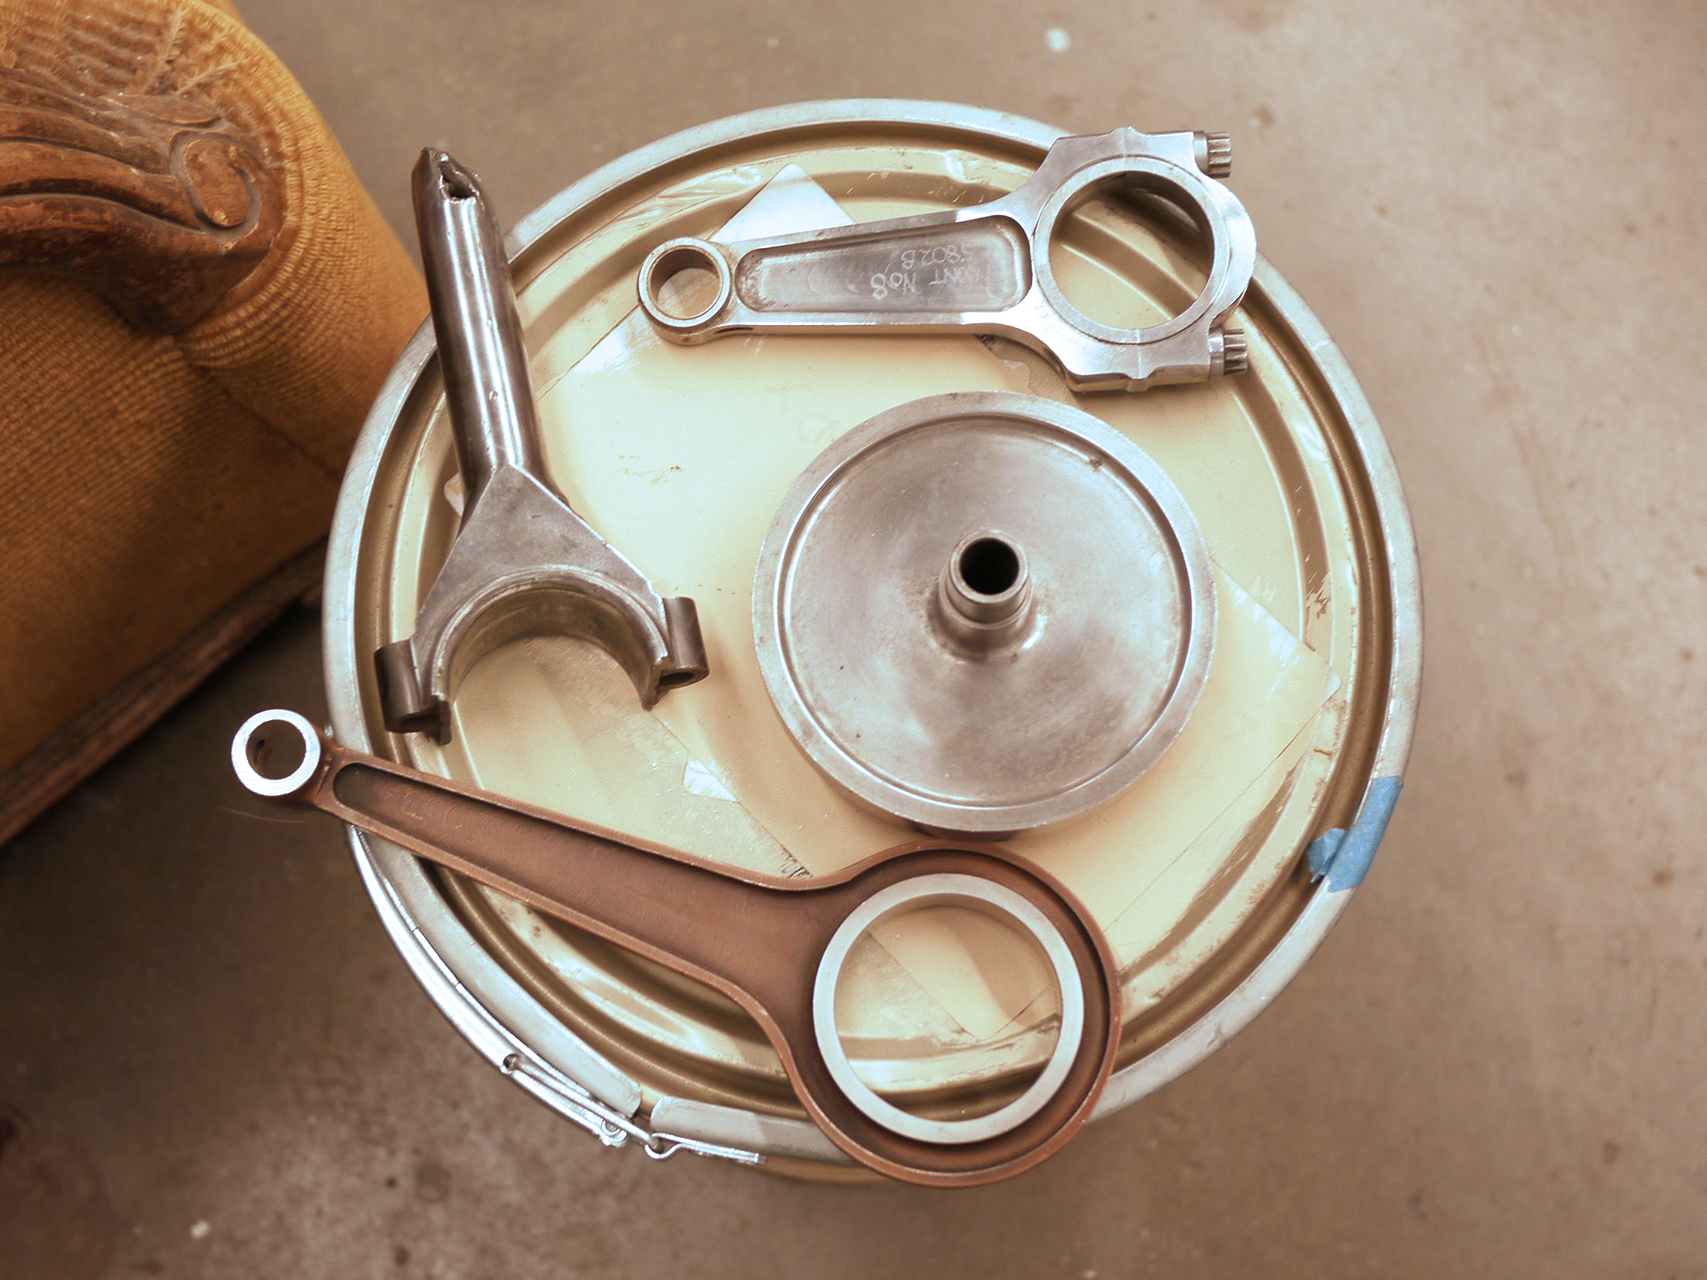 Bugatti, Miller and Weslake connecting rods from Long's collection of rare metal.